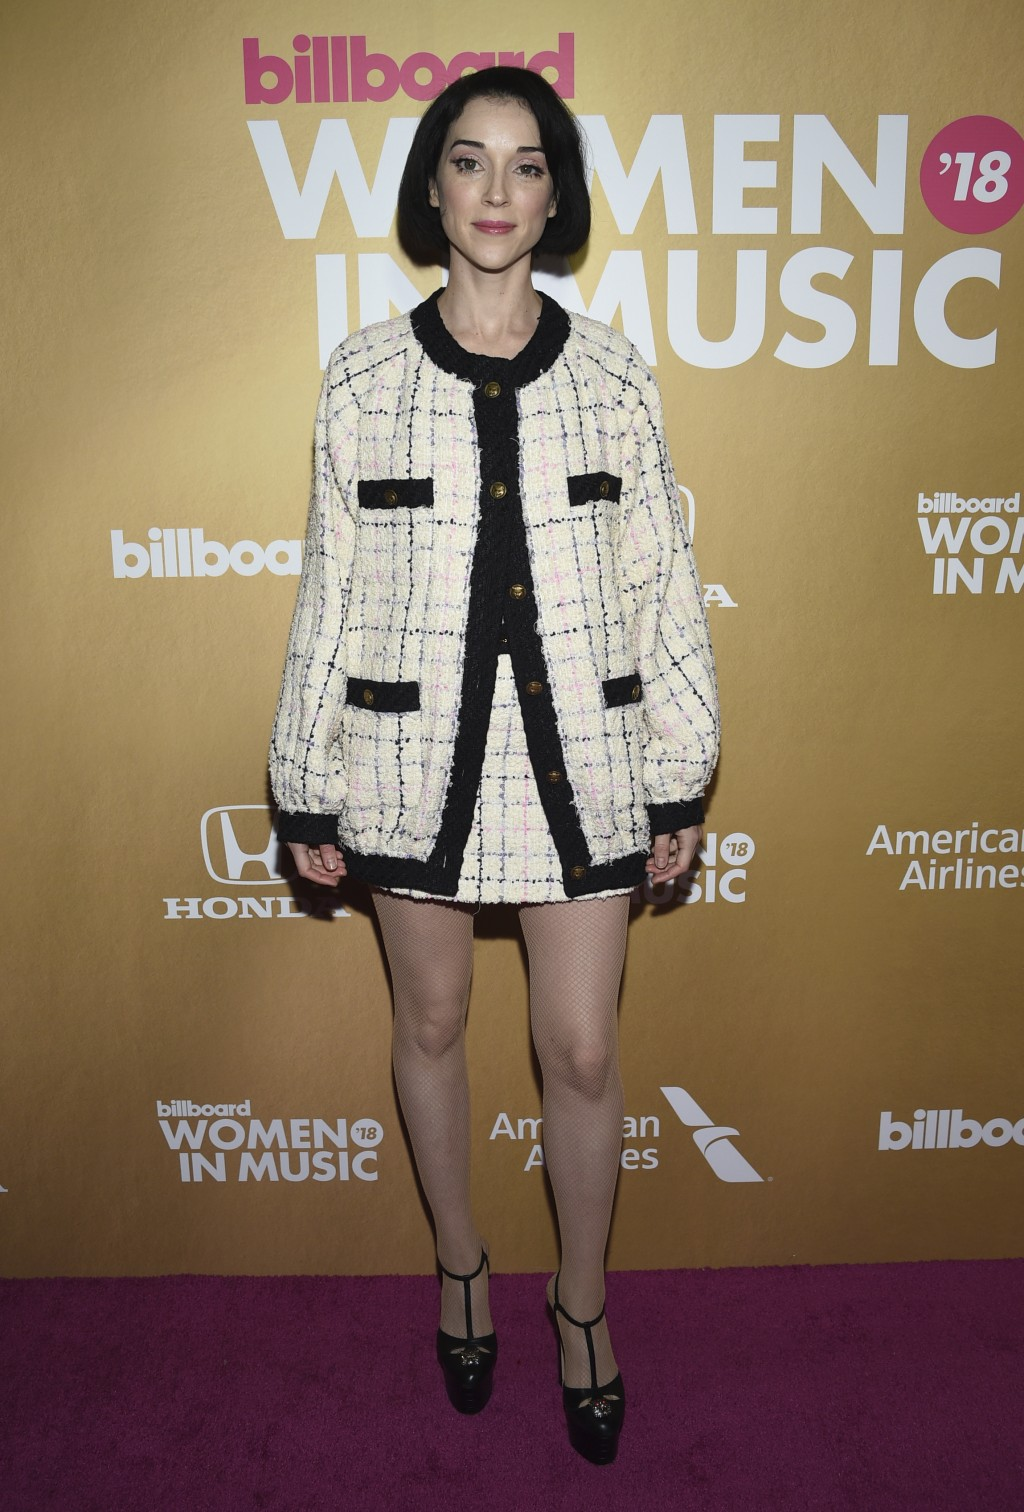 St. Vincent attends the 13th annual Billboard Women in Music event at Pier 36 on Thursday, Dec. 6, 2018, in New York. (Photo by Evan Agostini/Invision